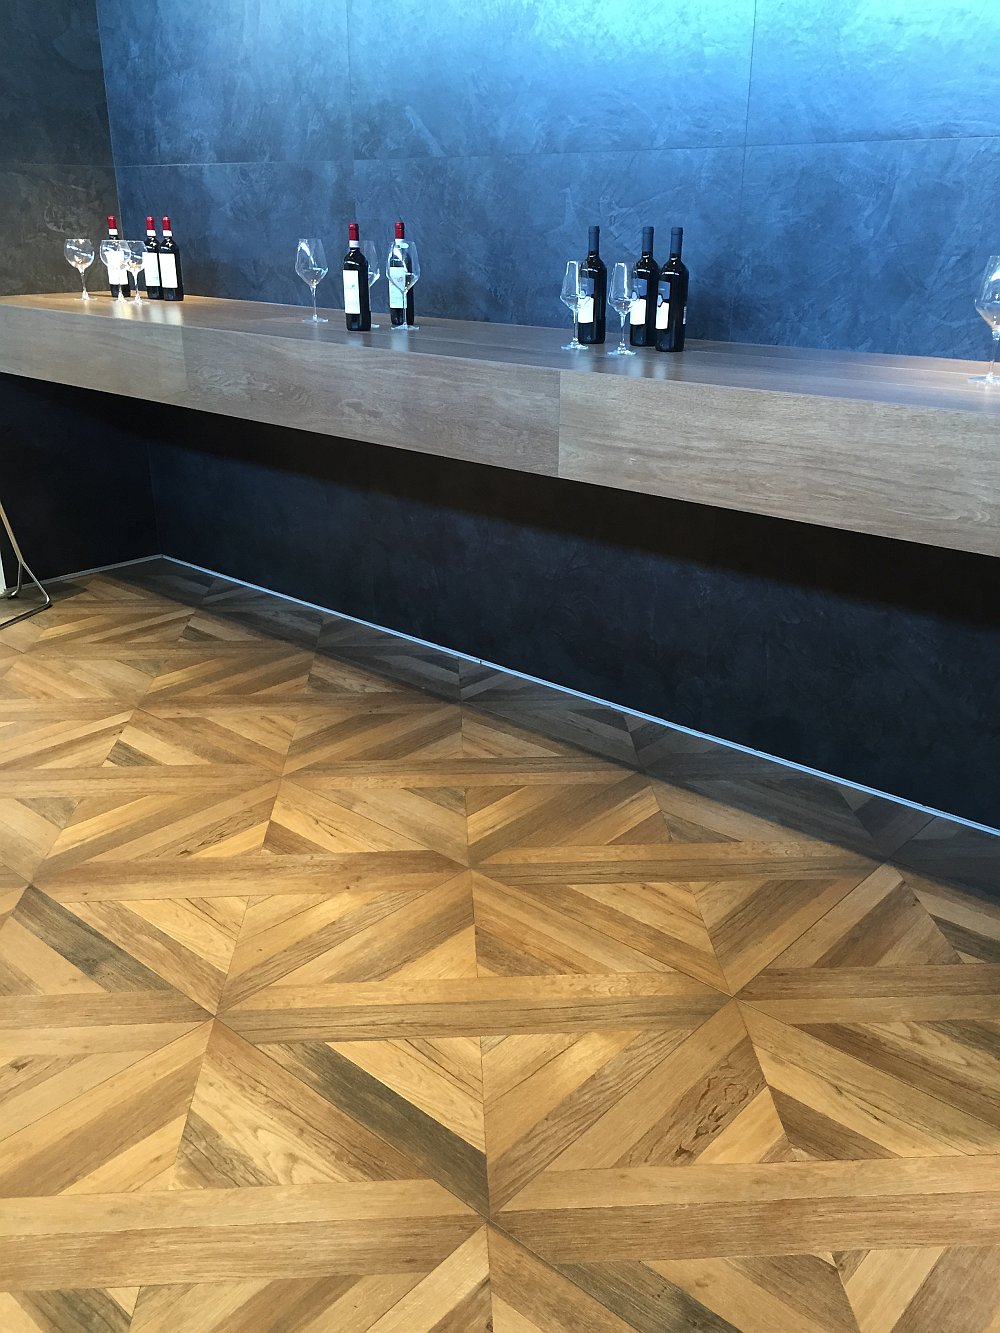 Trip to italy finding the worlds most beautiful ceramic tiles view in gallery home bar ceramic tiles doublecrazyfo Choice Image